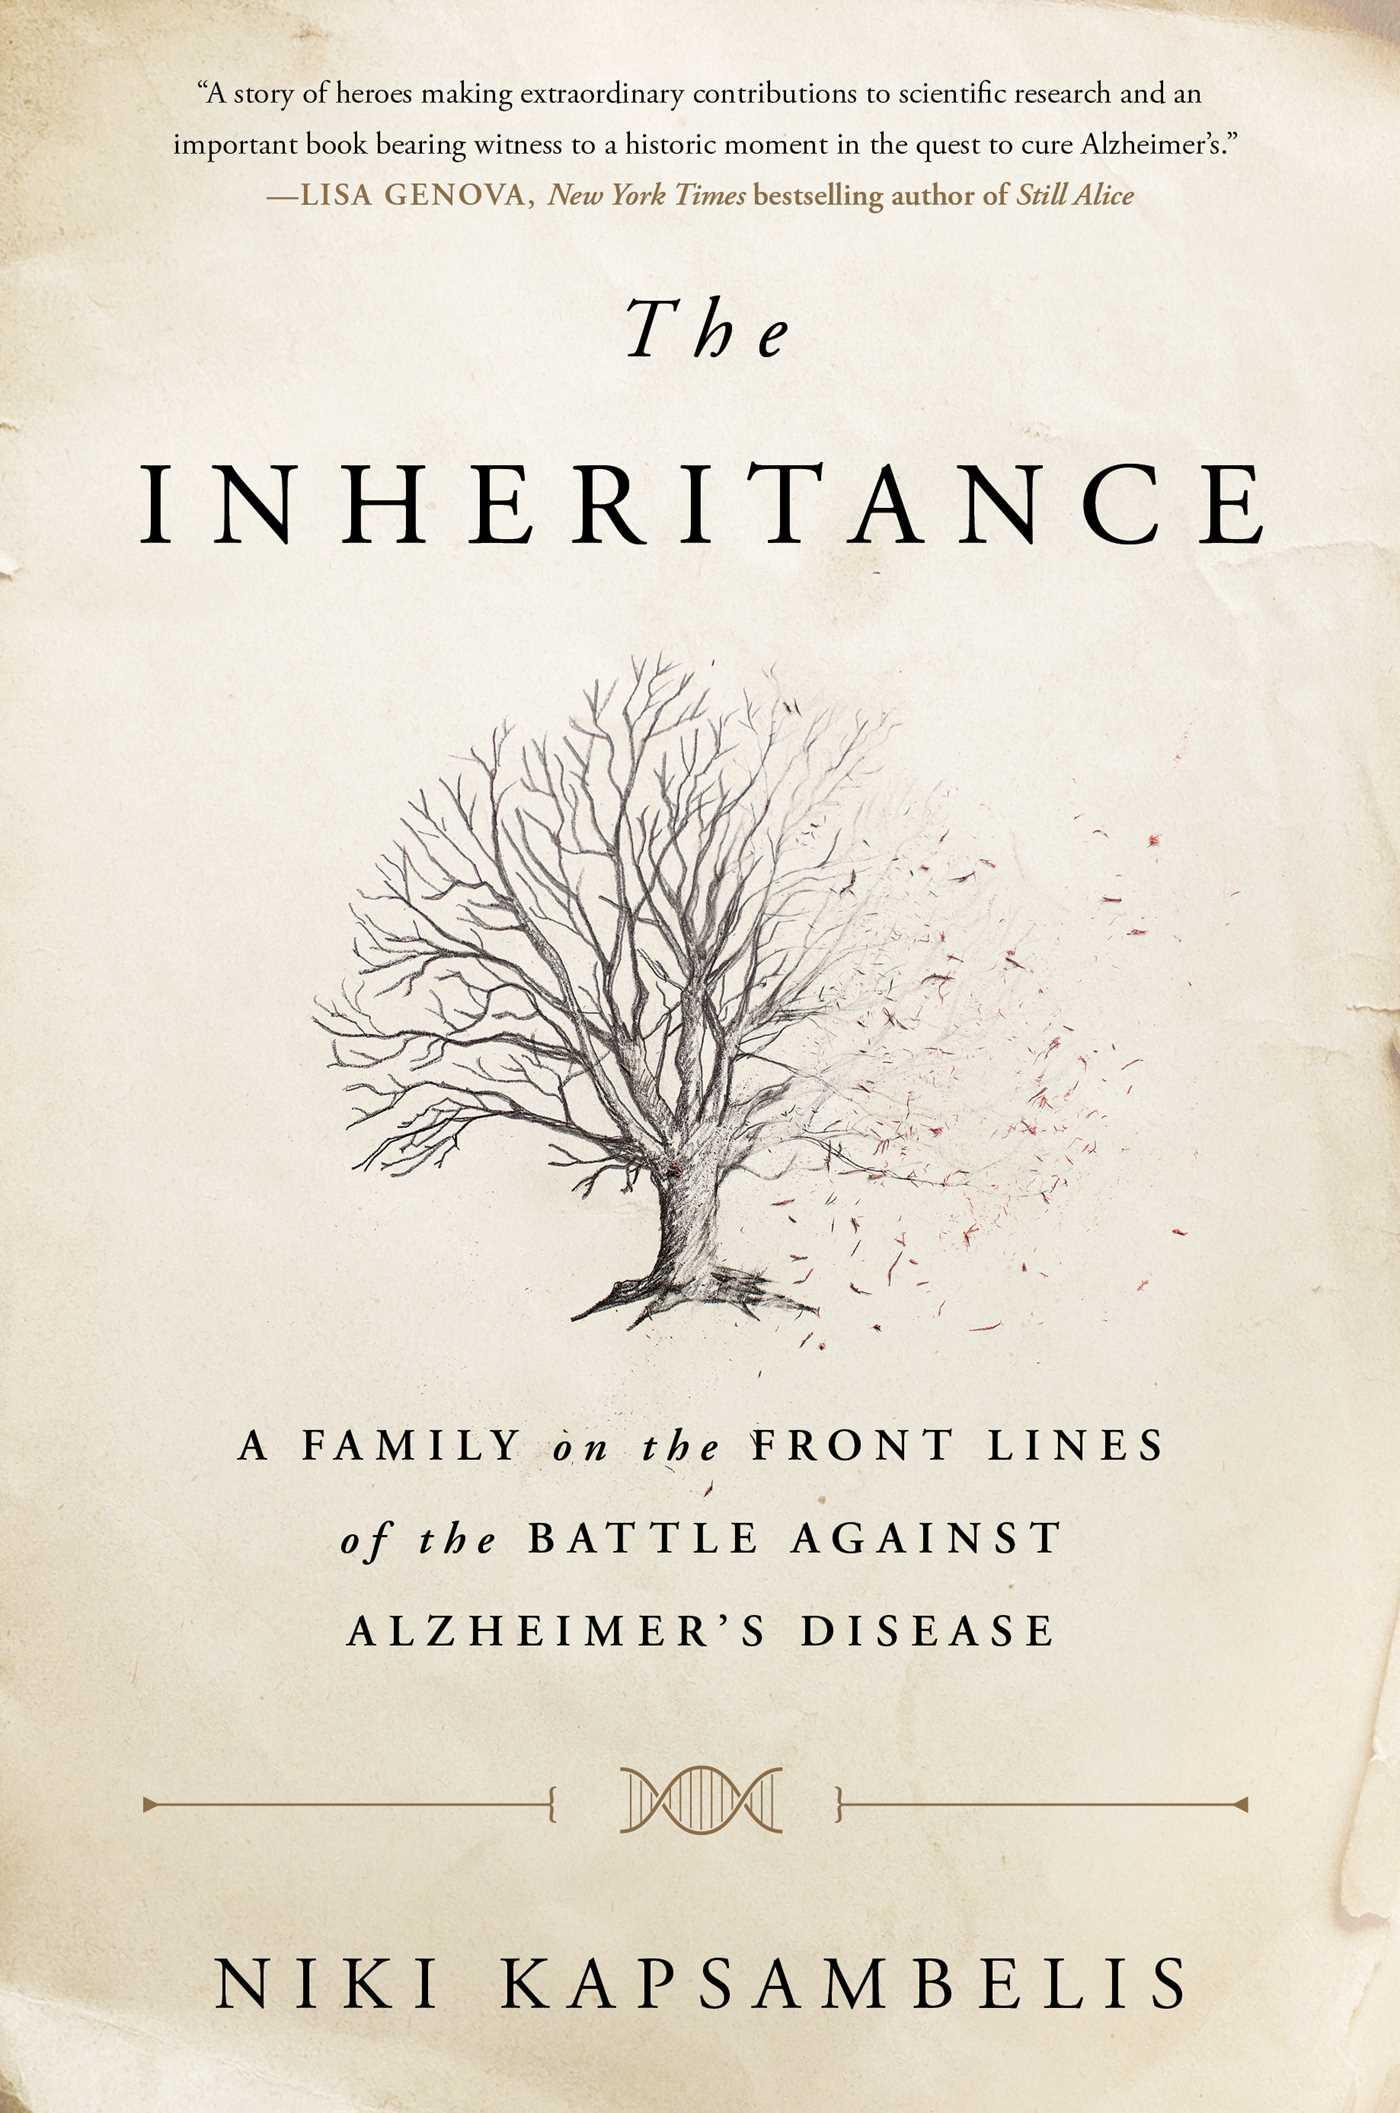 Alzheimer's in the Family: A Novel Approach forecast